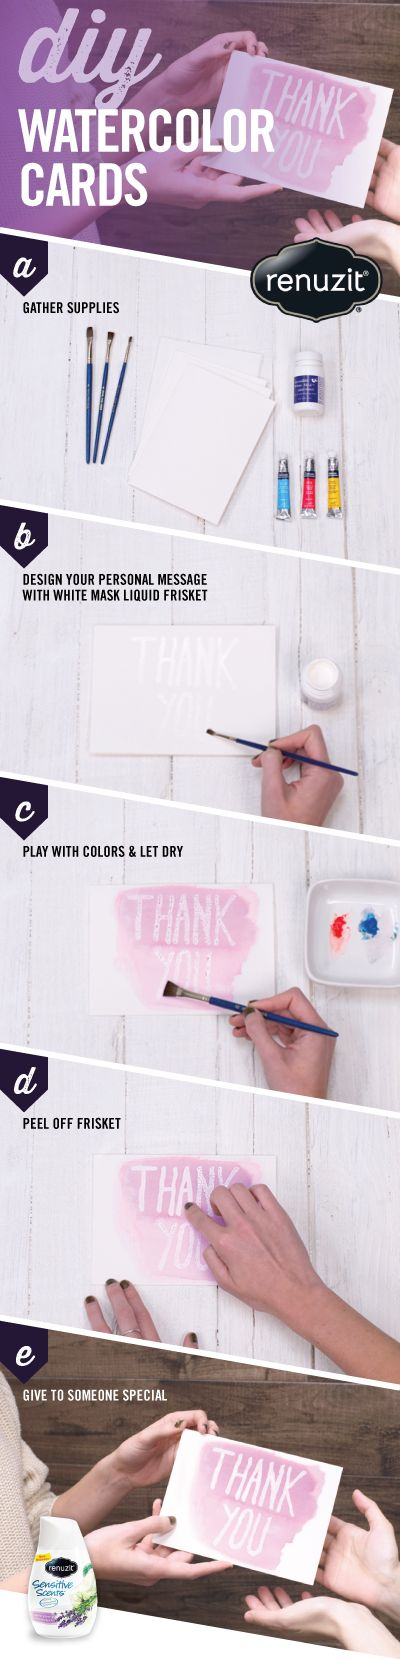 """This New Year create AMAZING DIY Watercolor Cards for a thoughtful way to say """"Thank You"""" to all your loved ones for their holiday gifts. ALSO, keep your home smelling fresh and inviting for them (without overpowering their noses) with new Renuzit Sensitive Scents!"""